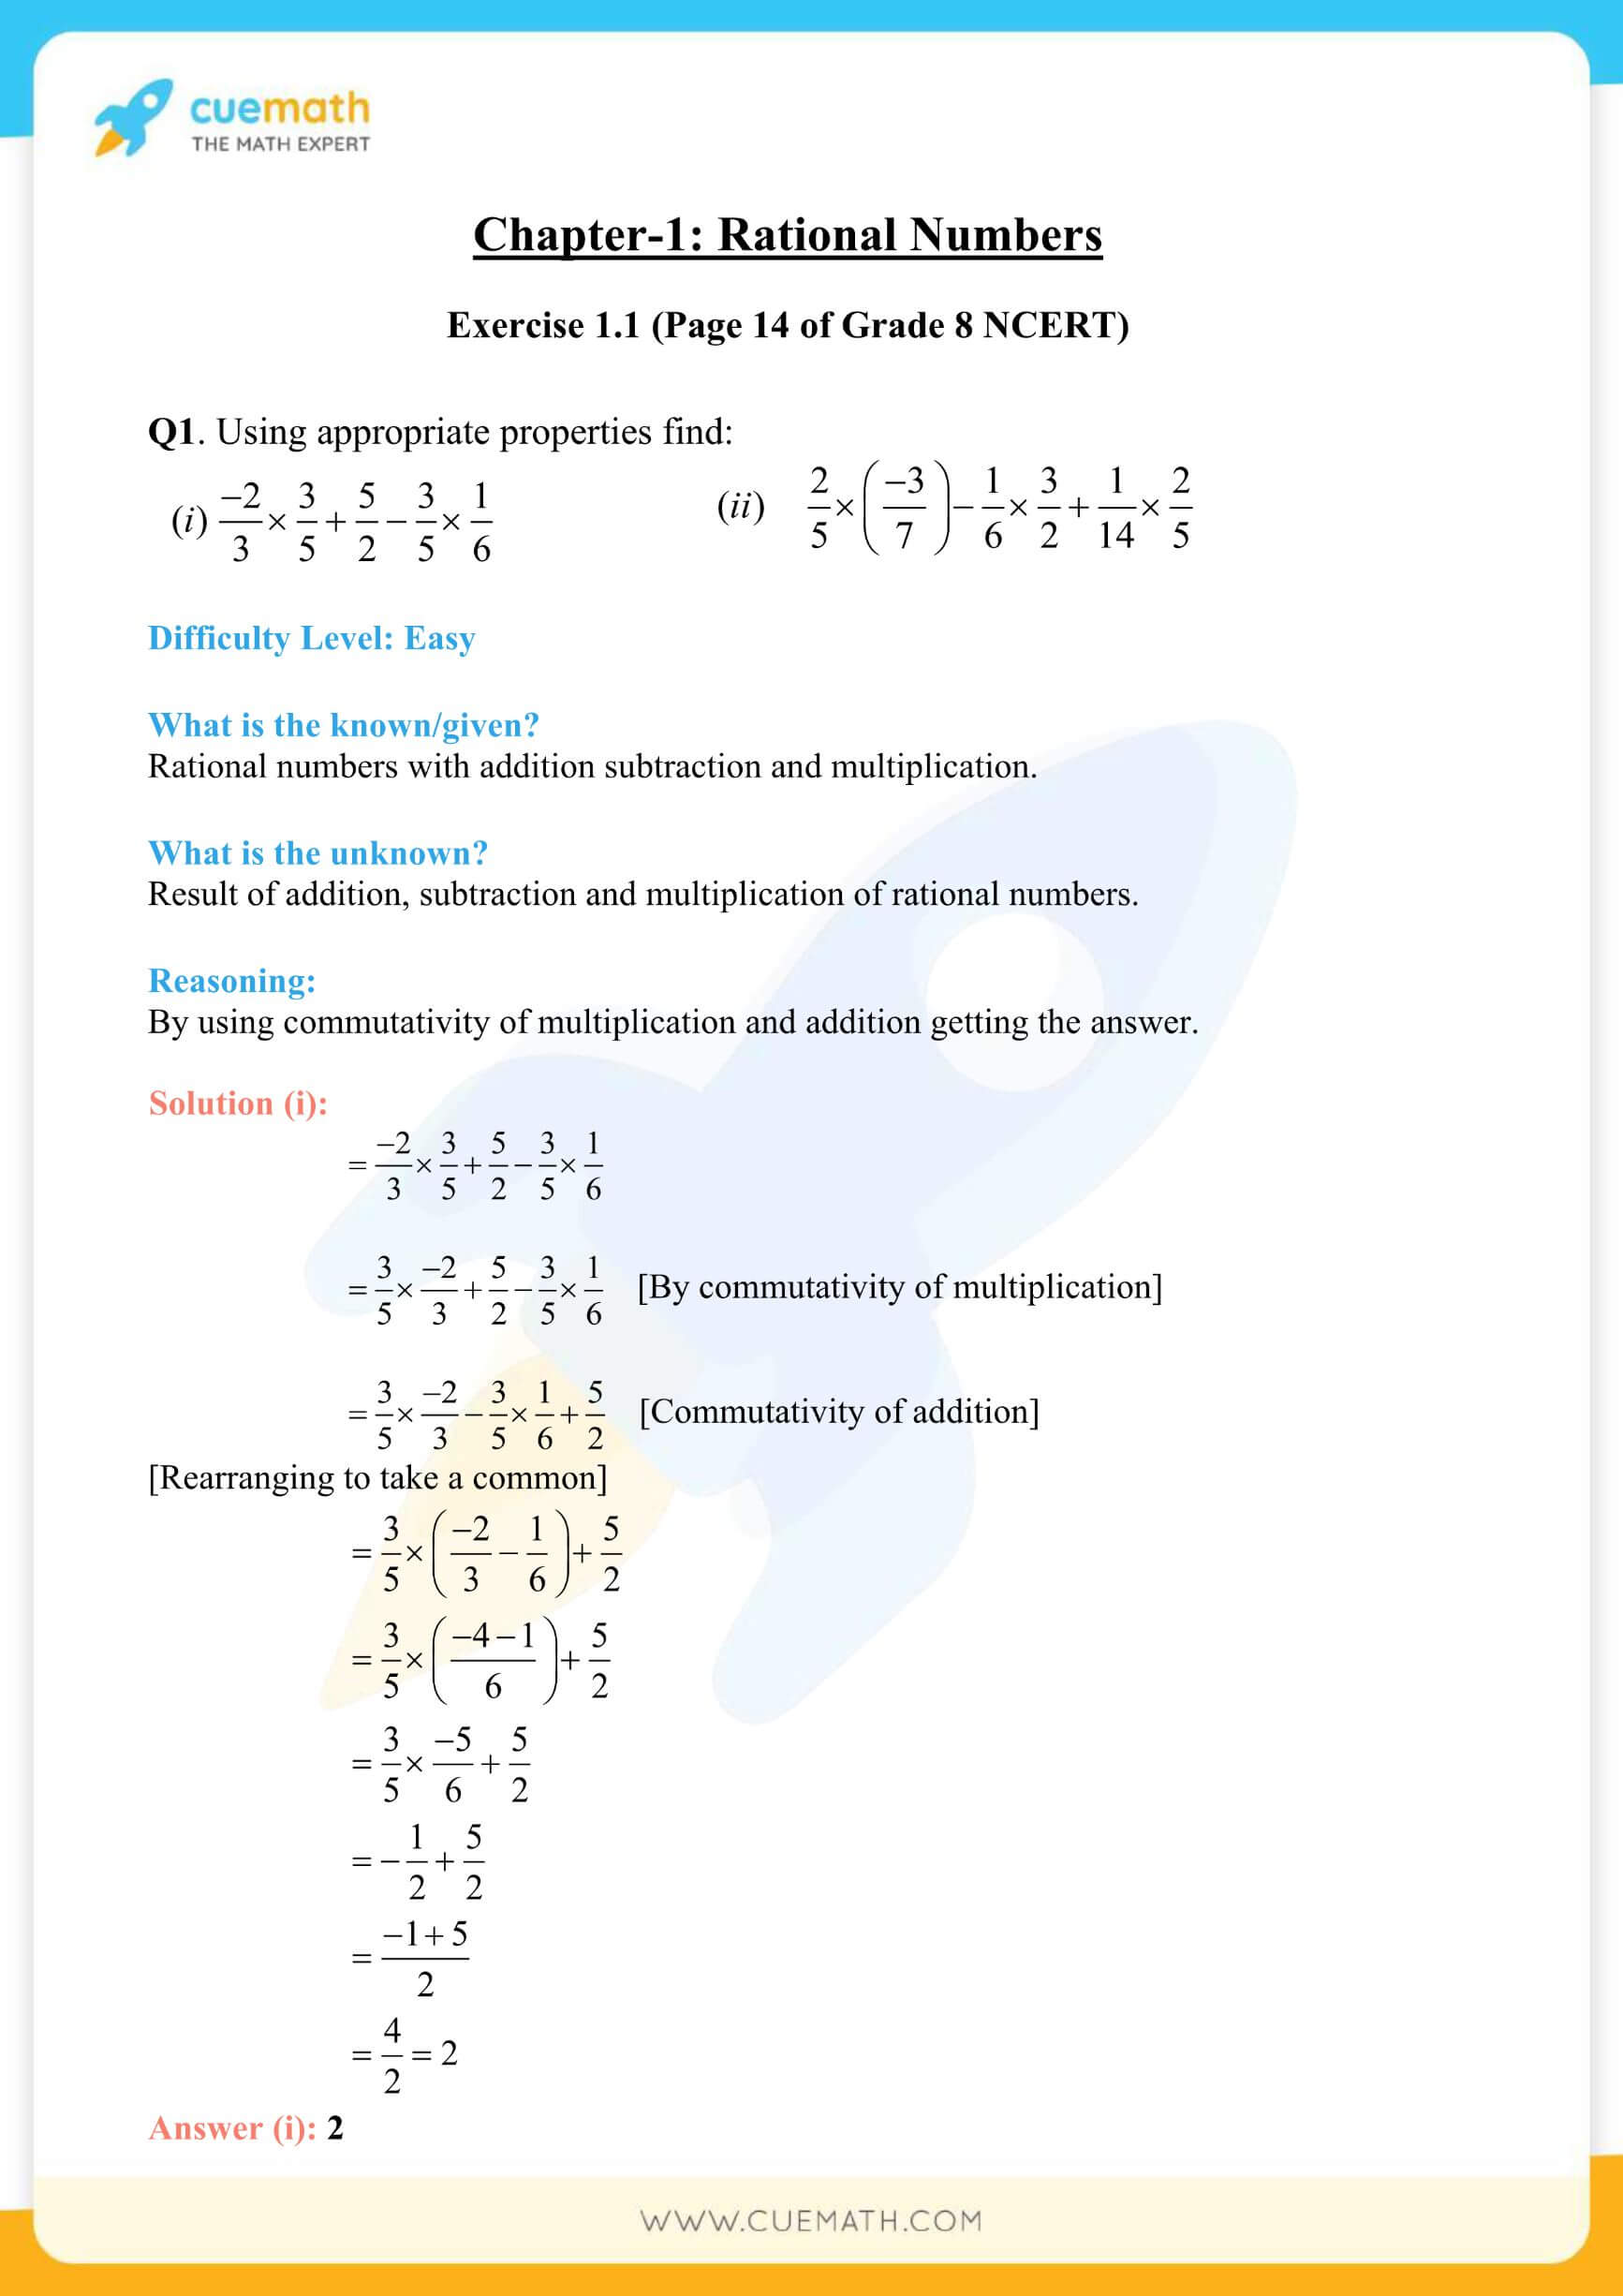 NCERT Solutions Class 8 Math Chapter 1 Rational Numbers 1